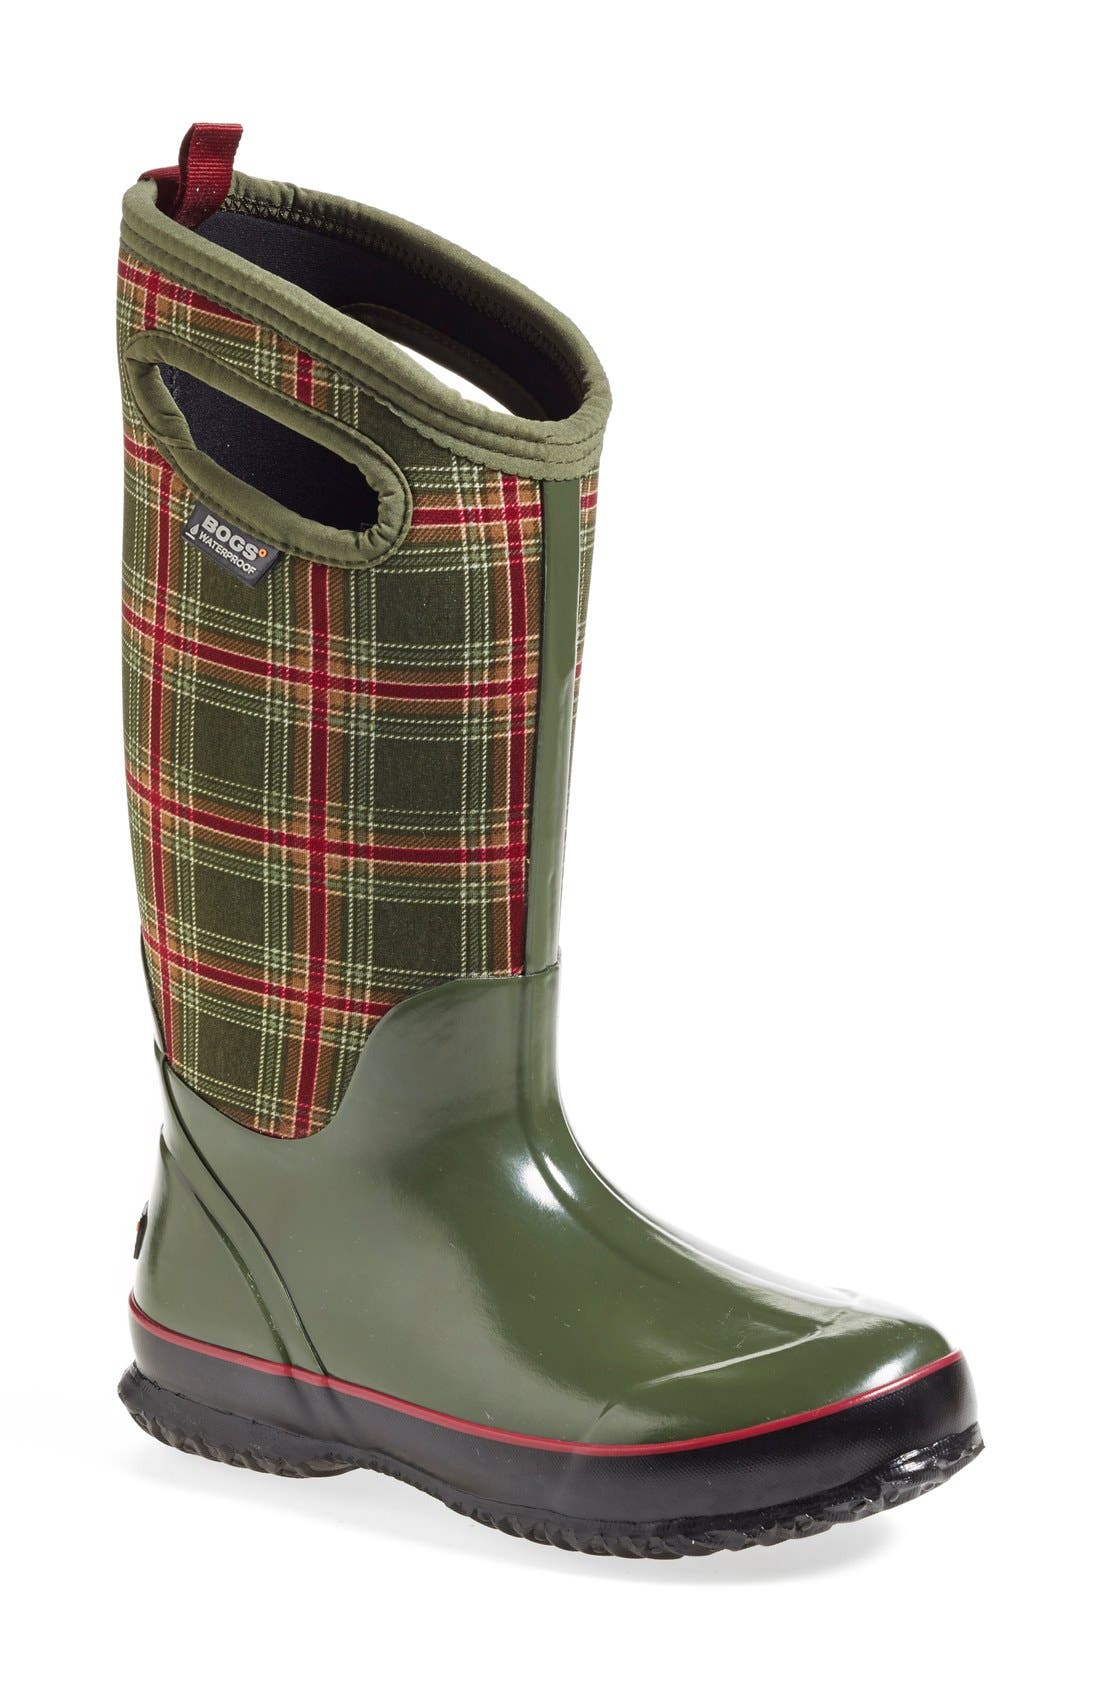 Main Image - Bogs 'Classic Winter Plaid' Tall Waterproof Snow Boot with Cutout Handles (Women)